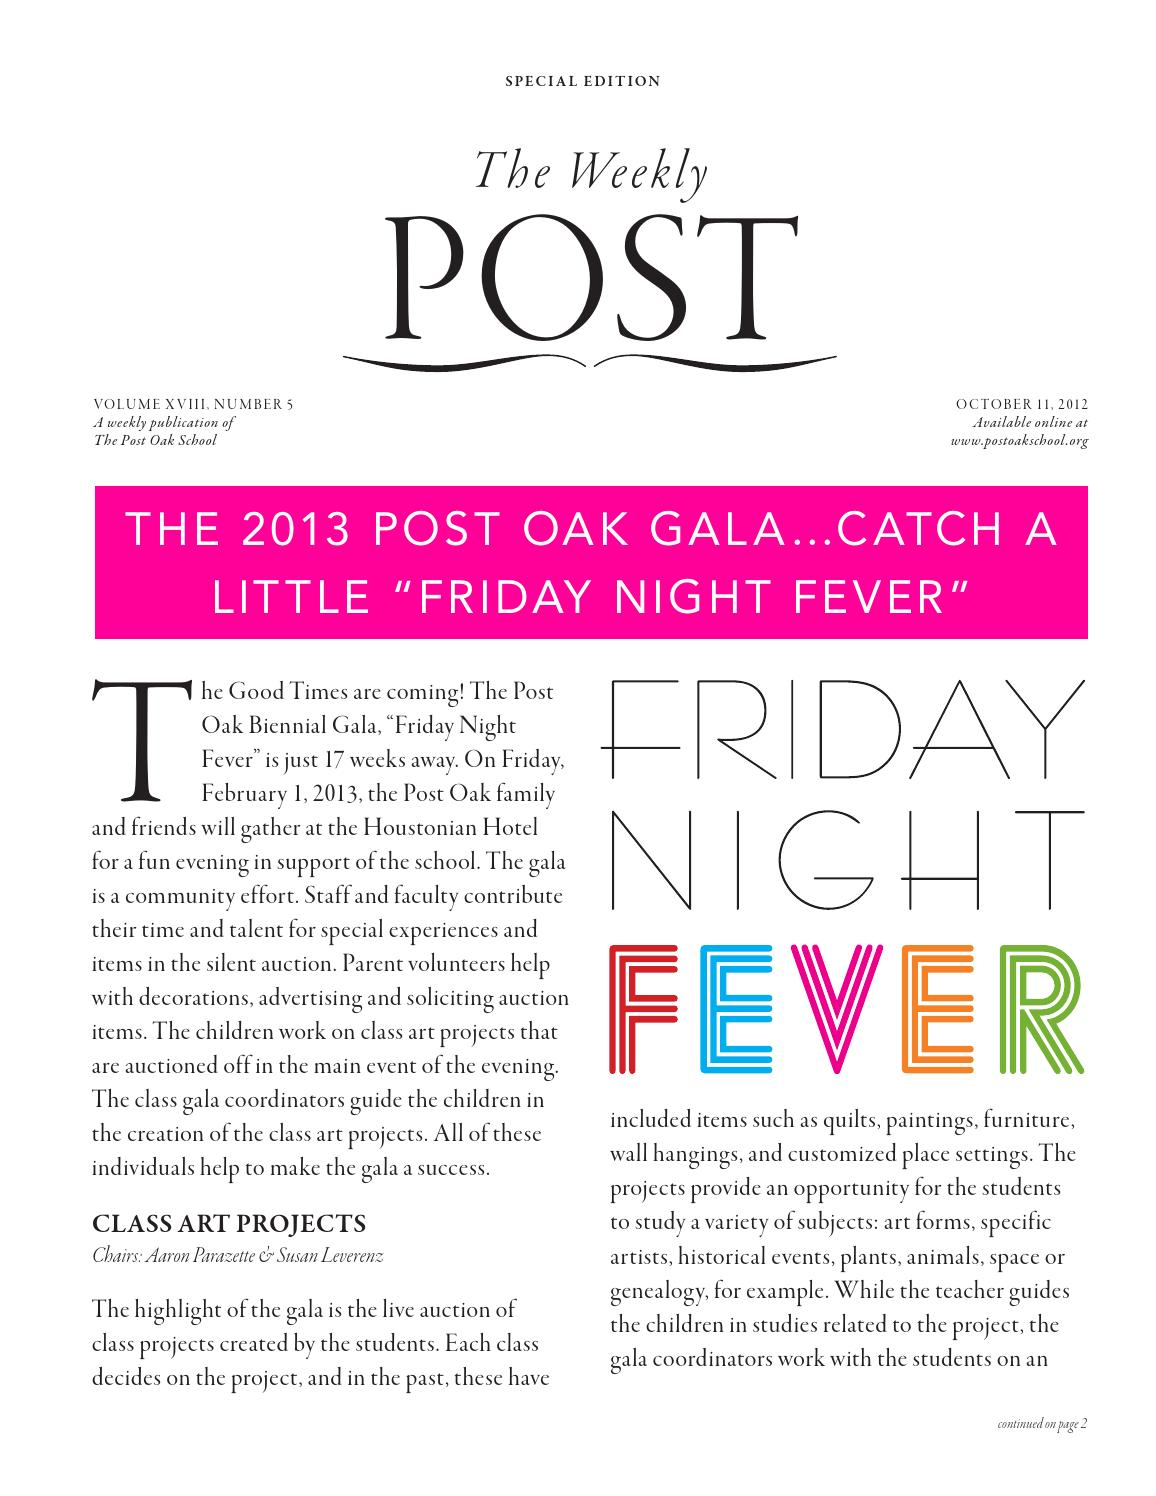 The Weekly Post, 10 11 2012 by The Post Oak School - issuu